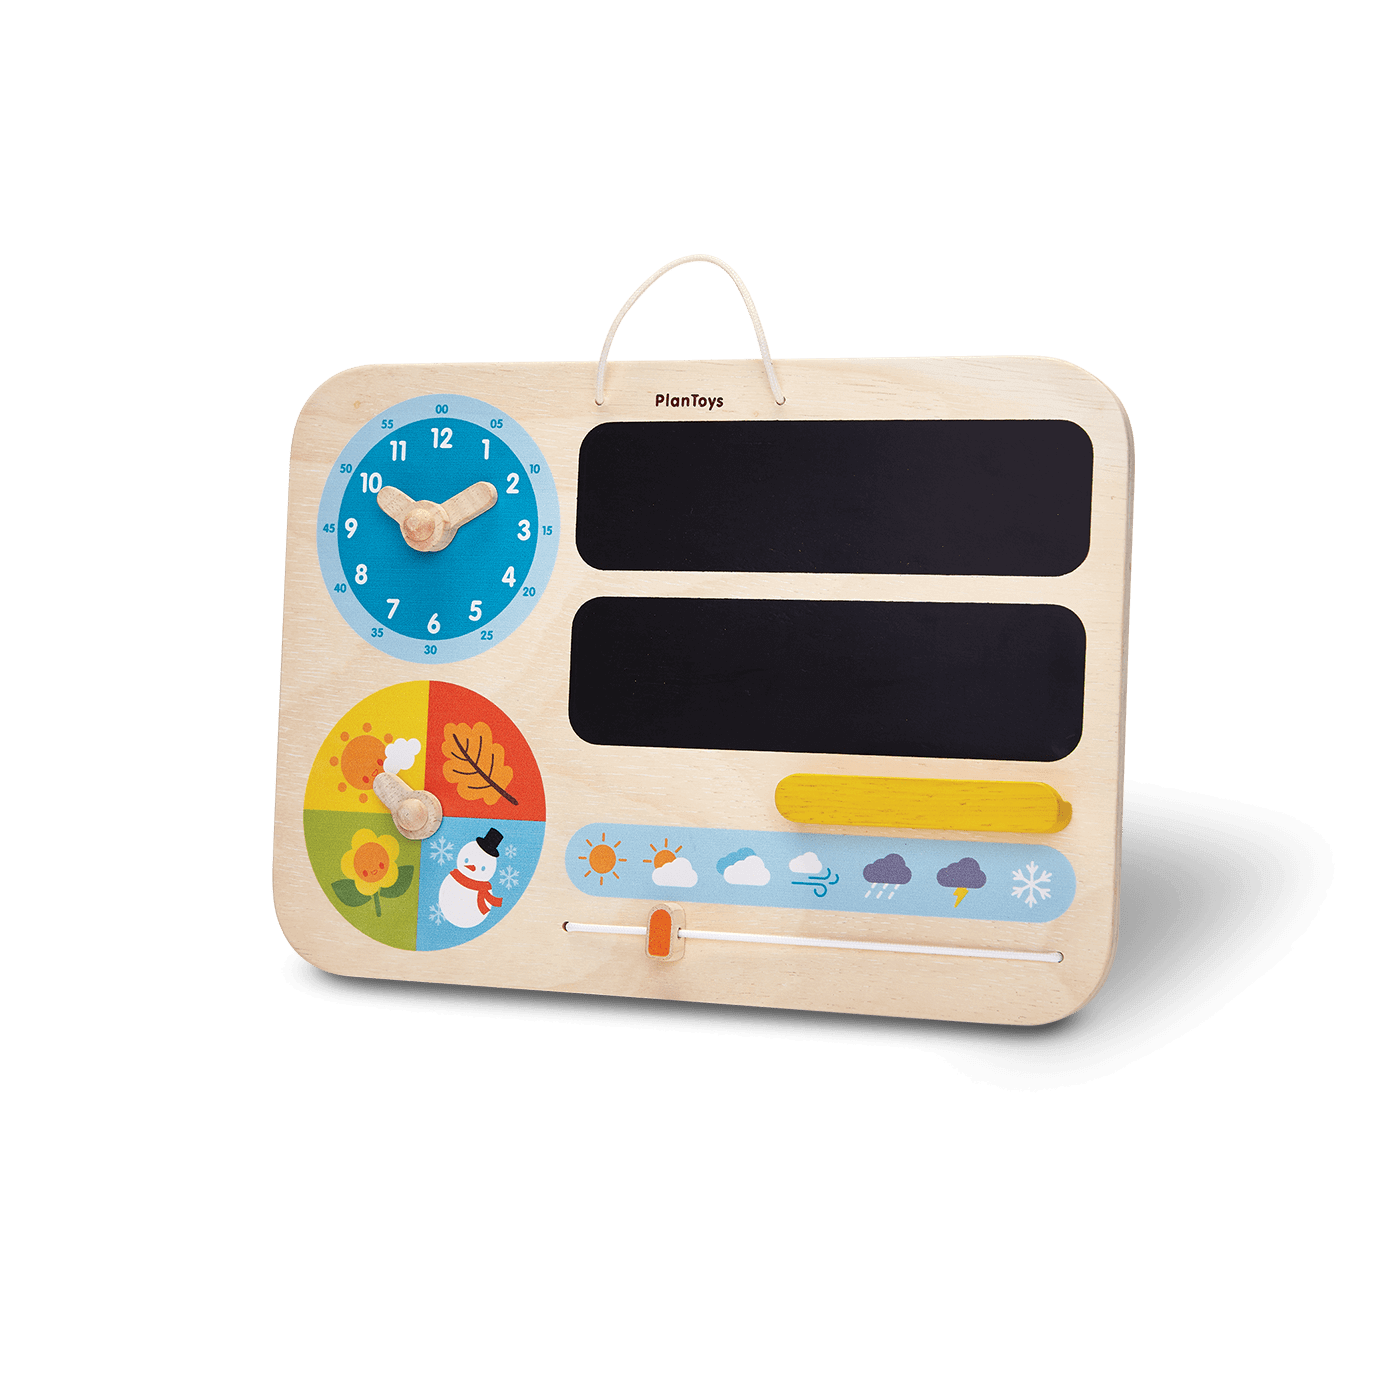 5359_PlanToys_MY_FIRST_CALENDAR_Learning_and_Education_Mathematical_Language_and_Communications_Explore_Fine_Motor_3yrs_Wooden_toys_Education_toys_Safety_Toys_Non-toxic_0.png